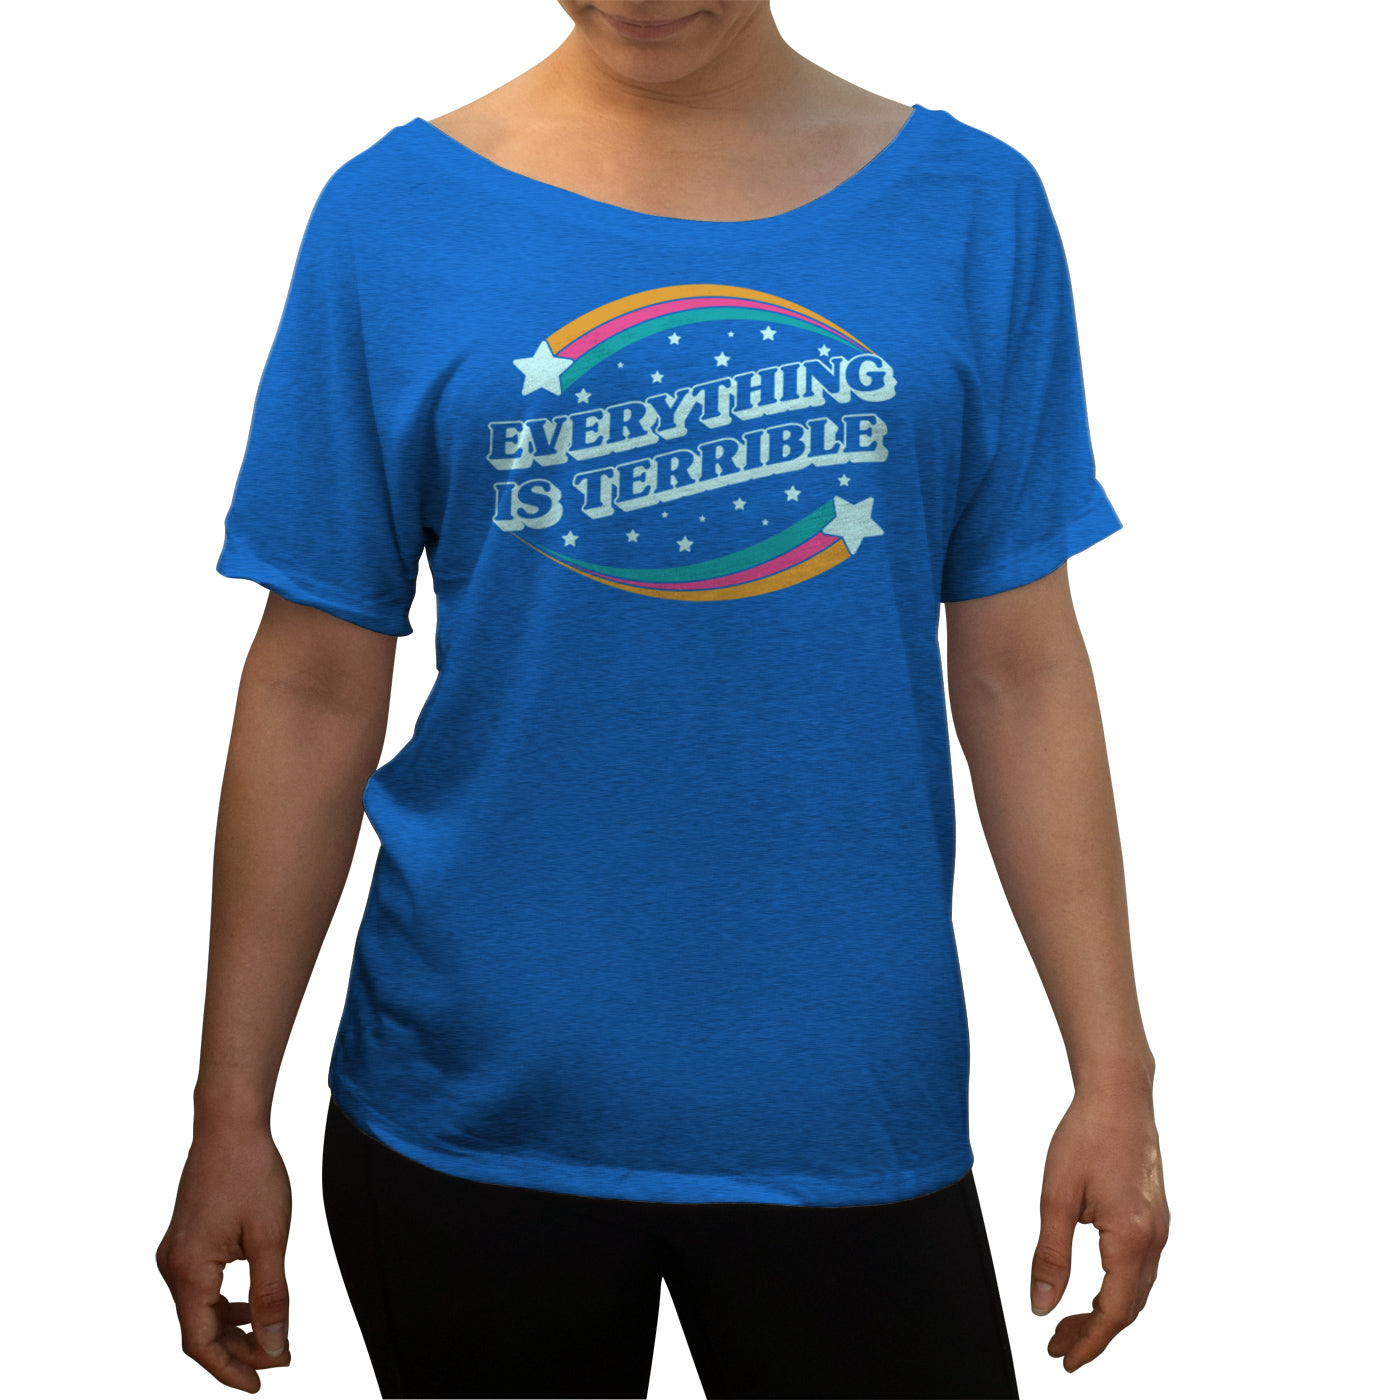 Women's Everything is Terrible Scoop Neck T-Shirt